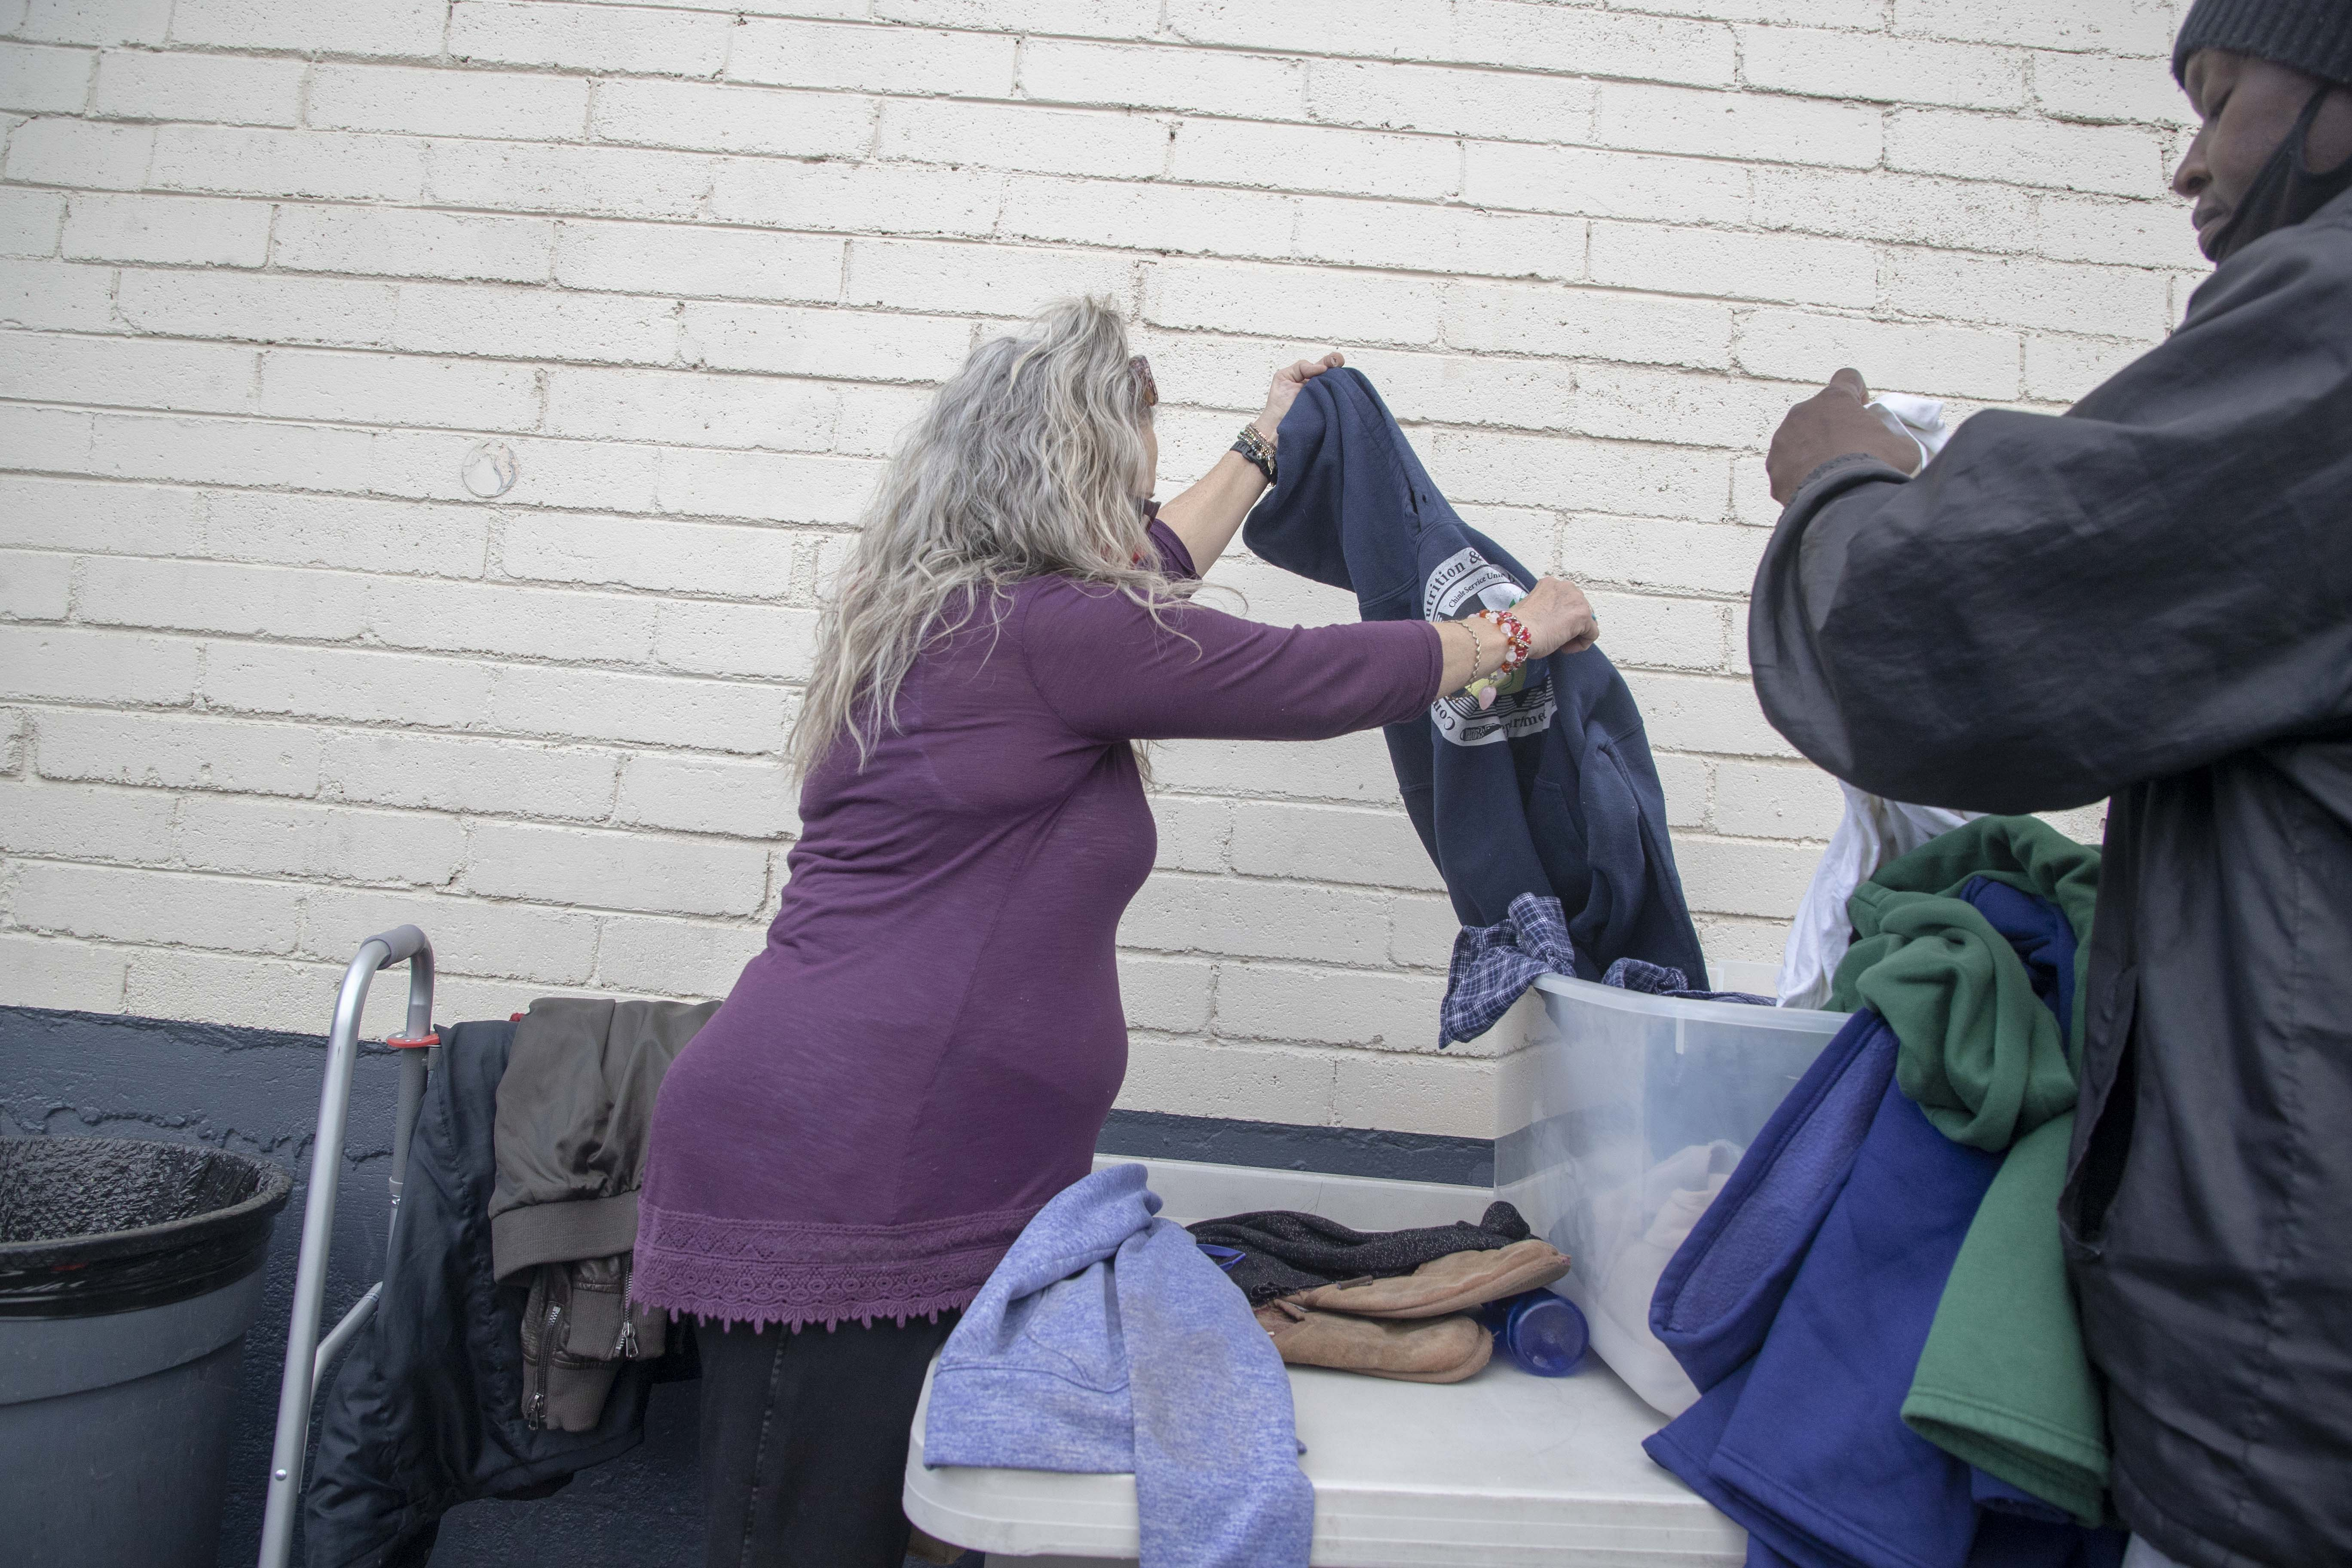 Darlene Carchedi sorts through donated clothes on Feb. 16, 2021, for herself and other homeless women at Andre House in Phoenix. She says she worries about who would do the job if she were to find permanent housing.